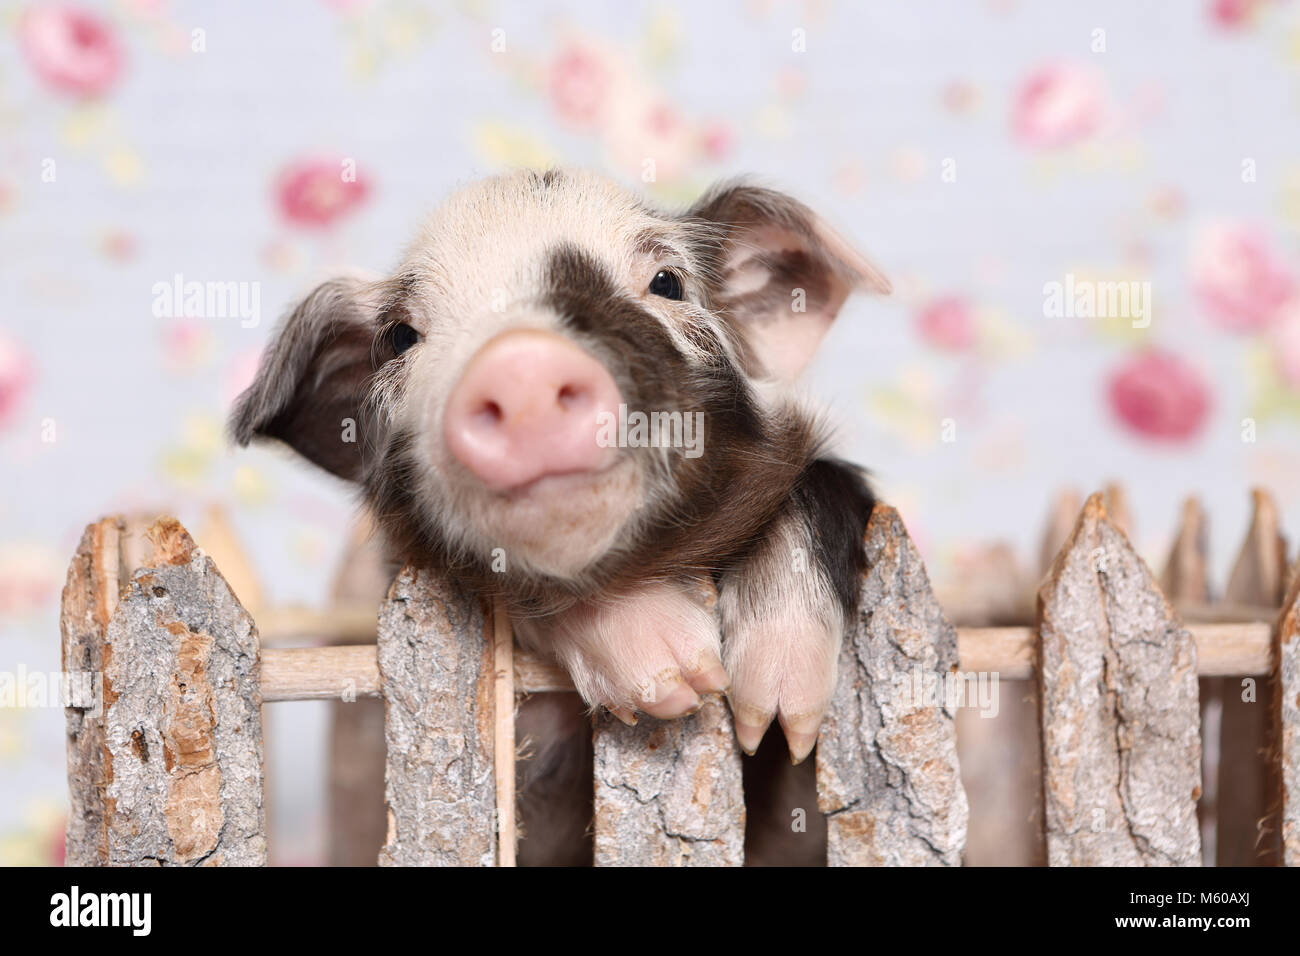 Domestic Pig, Turopolje x ?. Piglet in a small enclosure. Studio picture against a blue background with rose flower - Stock Image